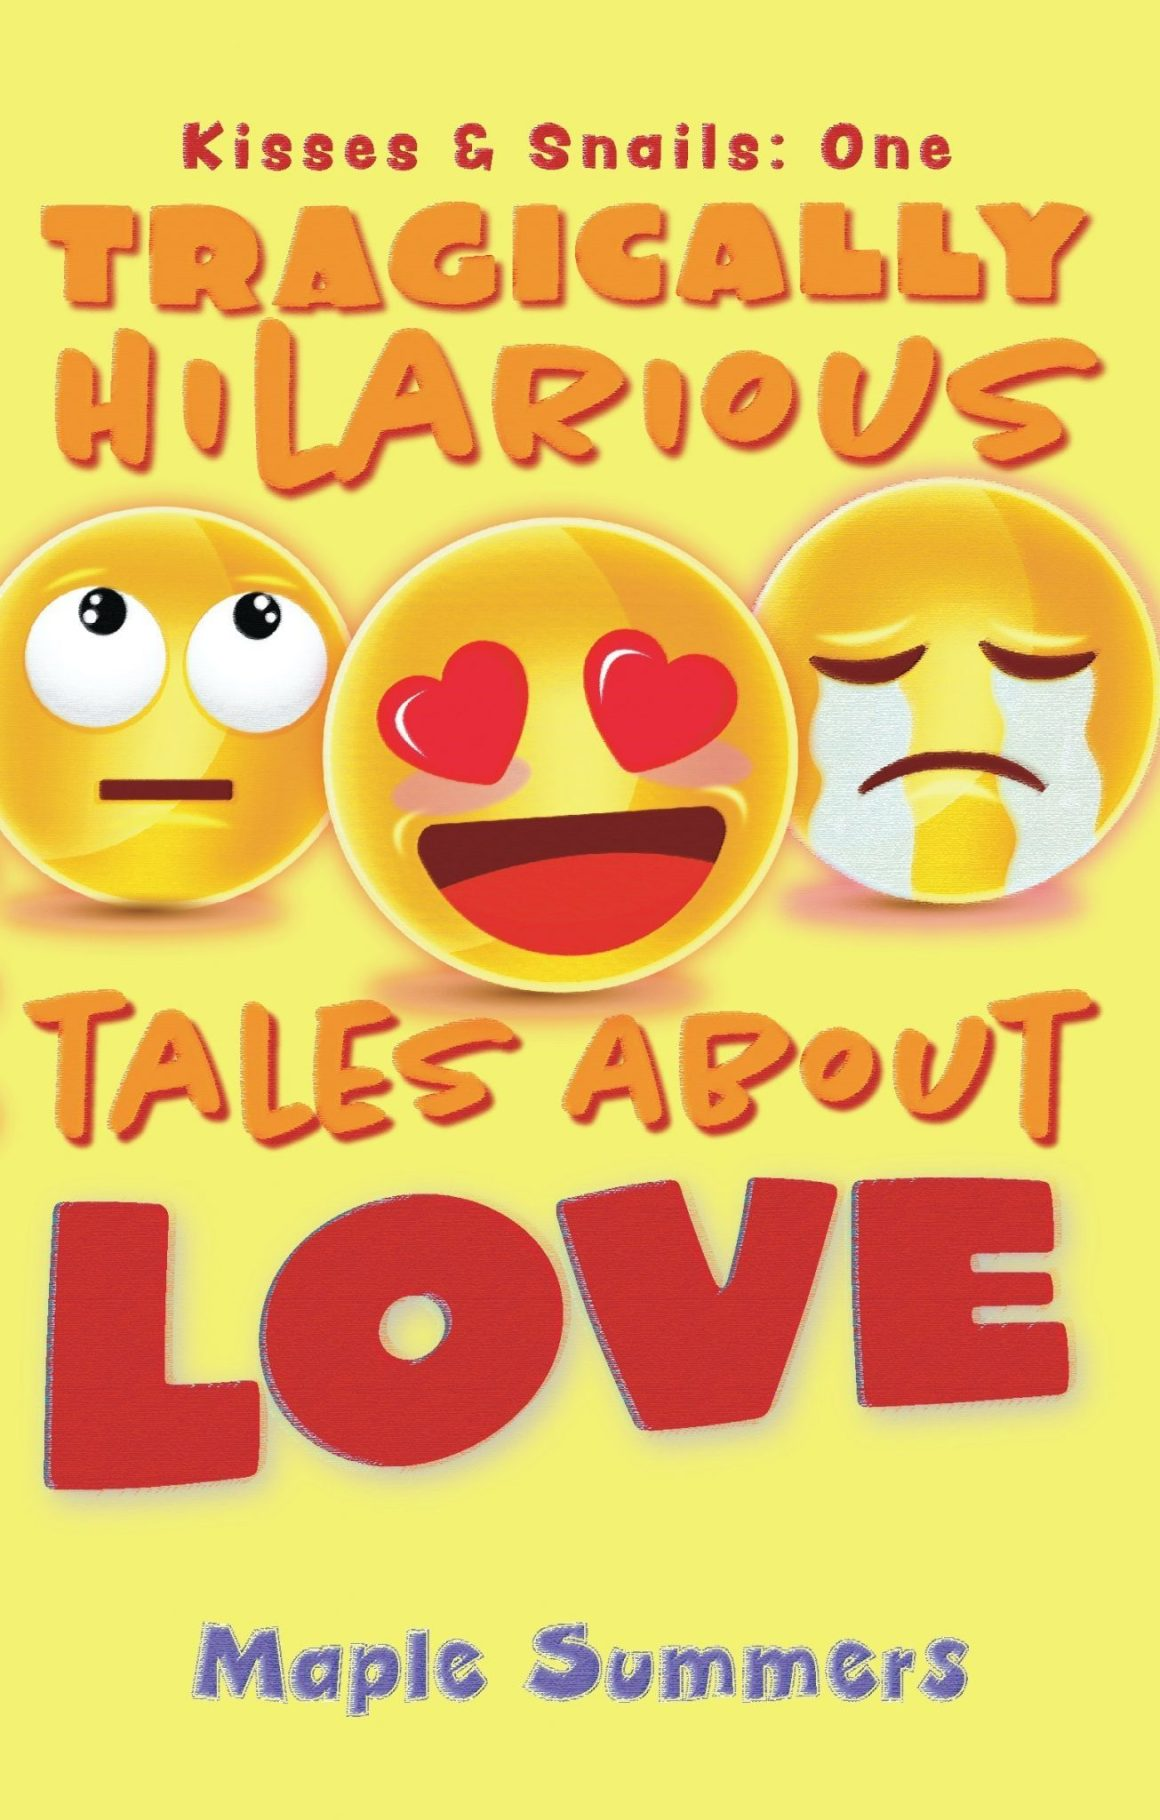 Book cover of Tragically Hilarious Tales About Love from the Kisses & Snails Series by Maple Summers